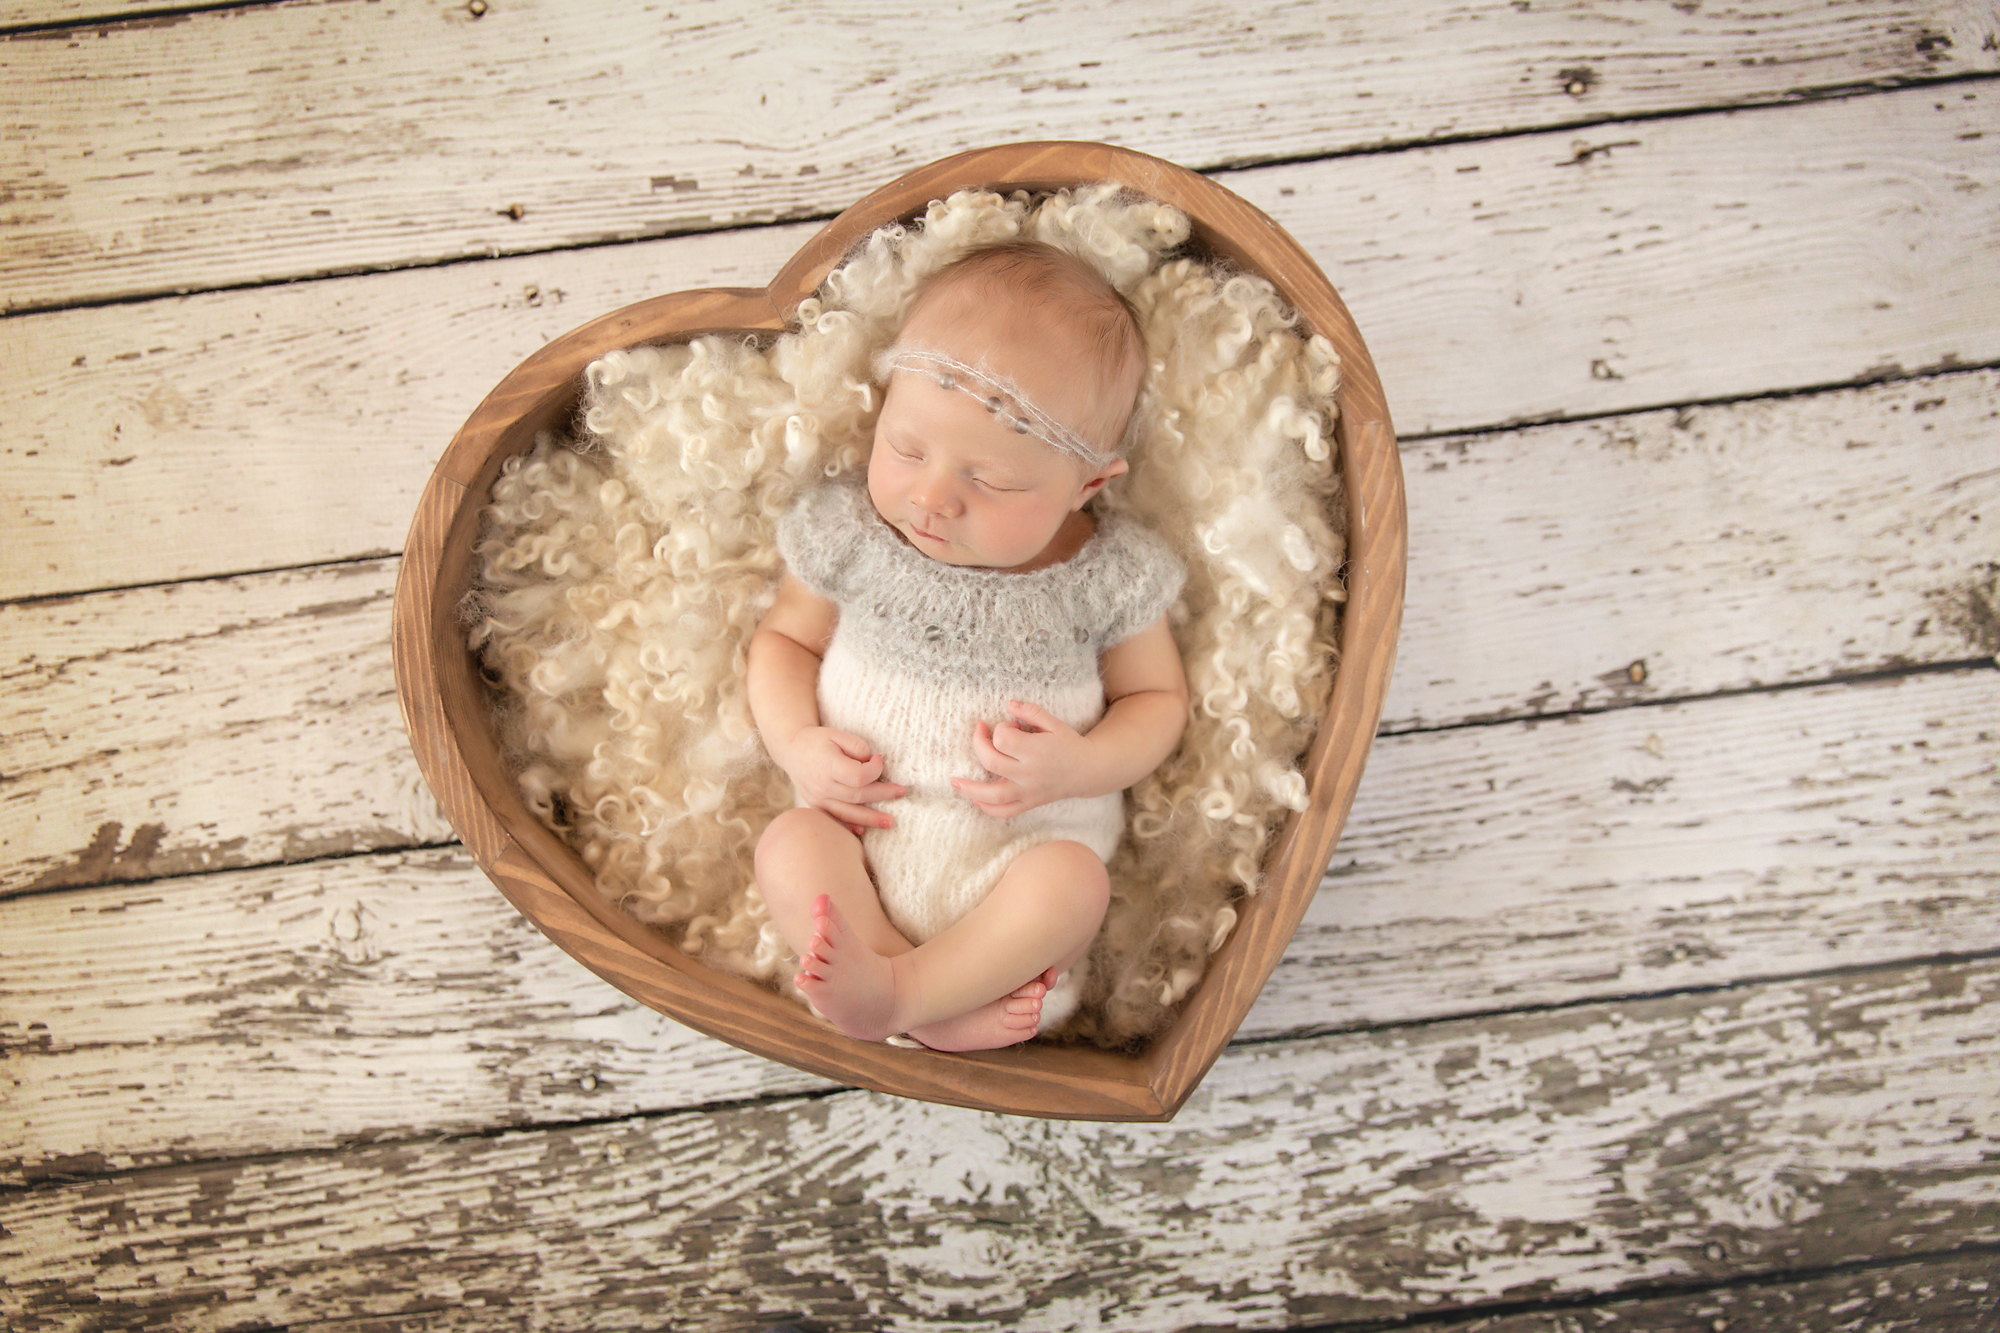 Newborn Photoshoot inspiration ideas. Calgary and Airdrie, Alberta Newborn and Baby photographer - Milashka Photography. Baby girl is posed in a heart shaped wooden bowl and is wearing a cute little grey and white knitted outfit.